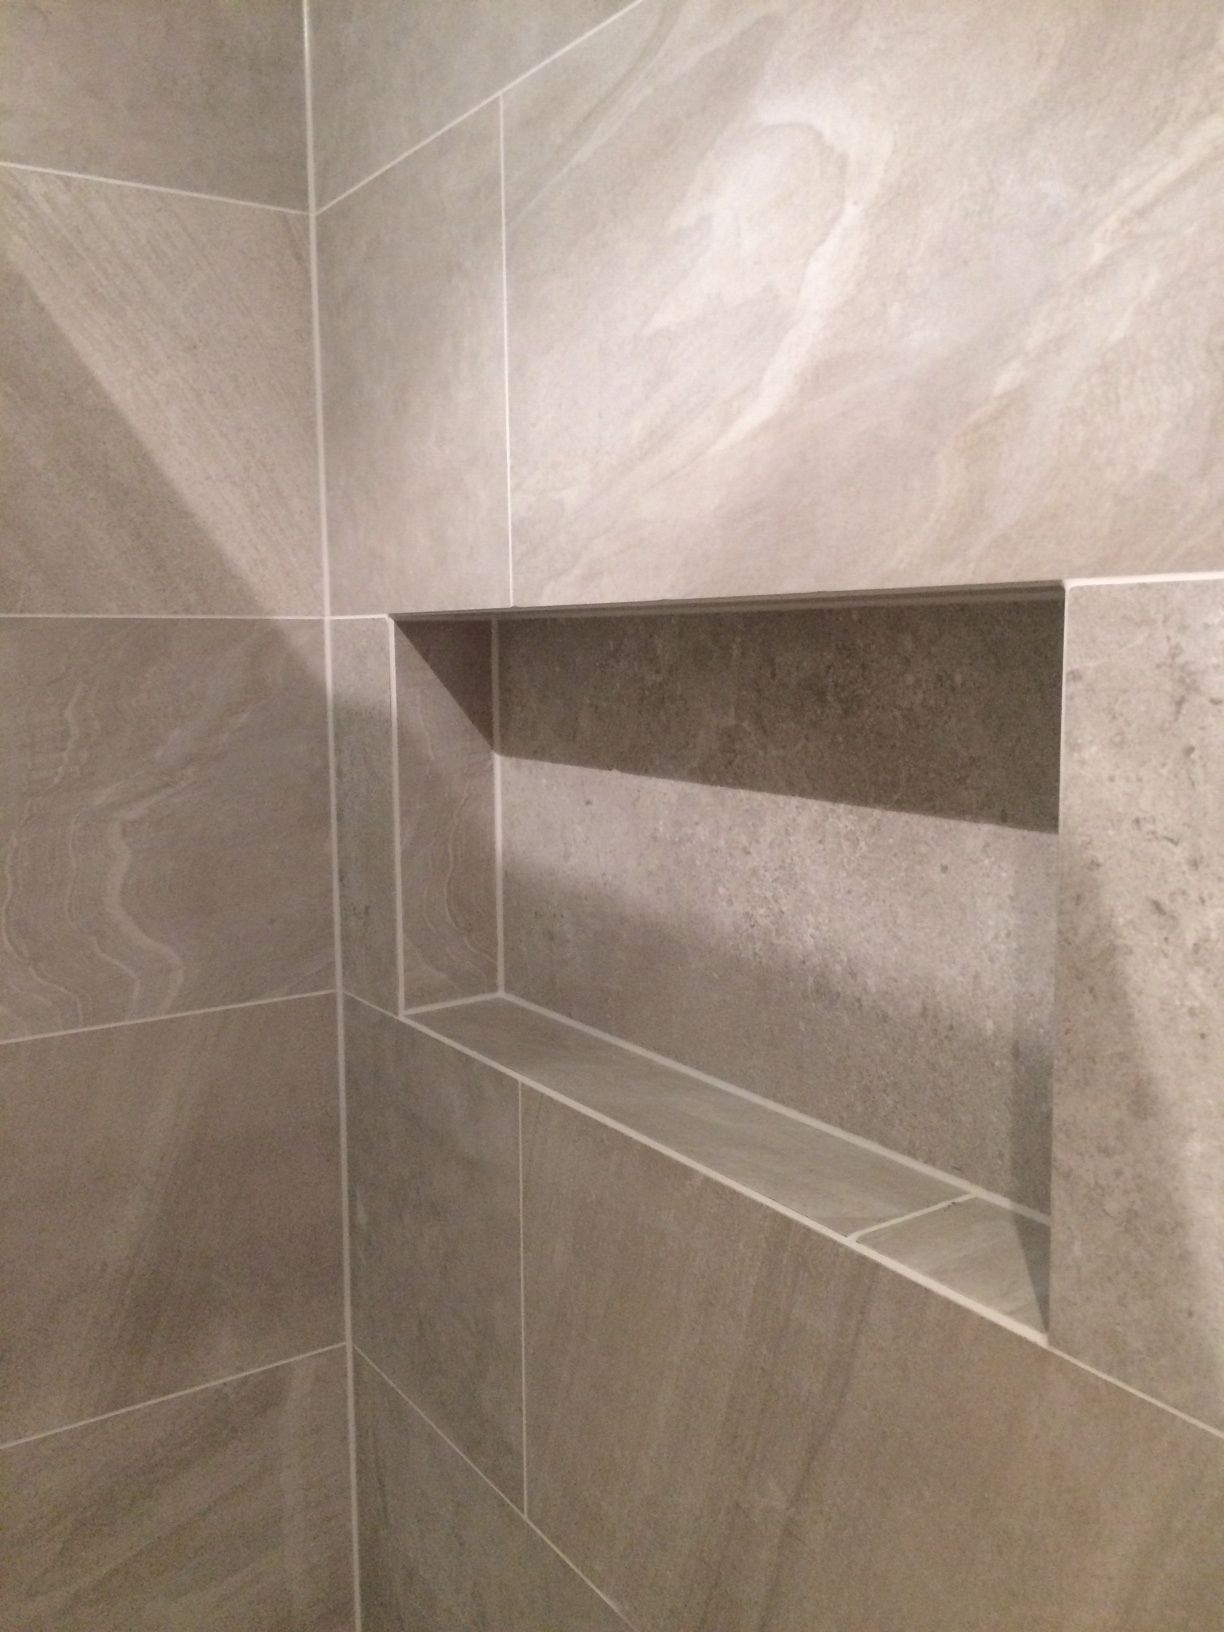 Terrific Mitredtiles Around Recessed Niche In Shower Master Bath In Download Free Architecture Designs Scobabritishbridgeorg